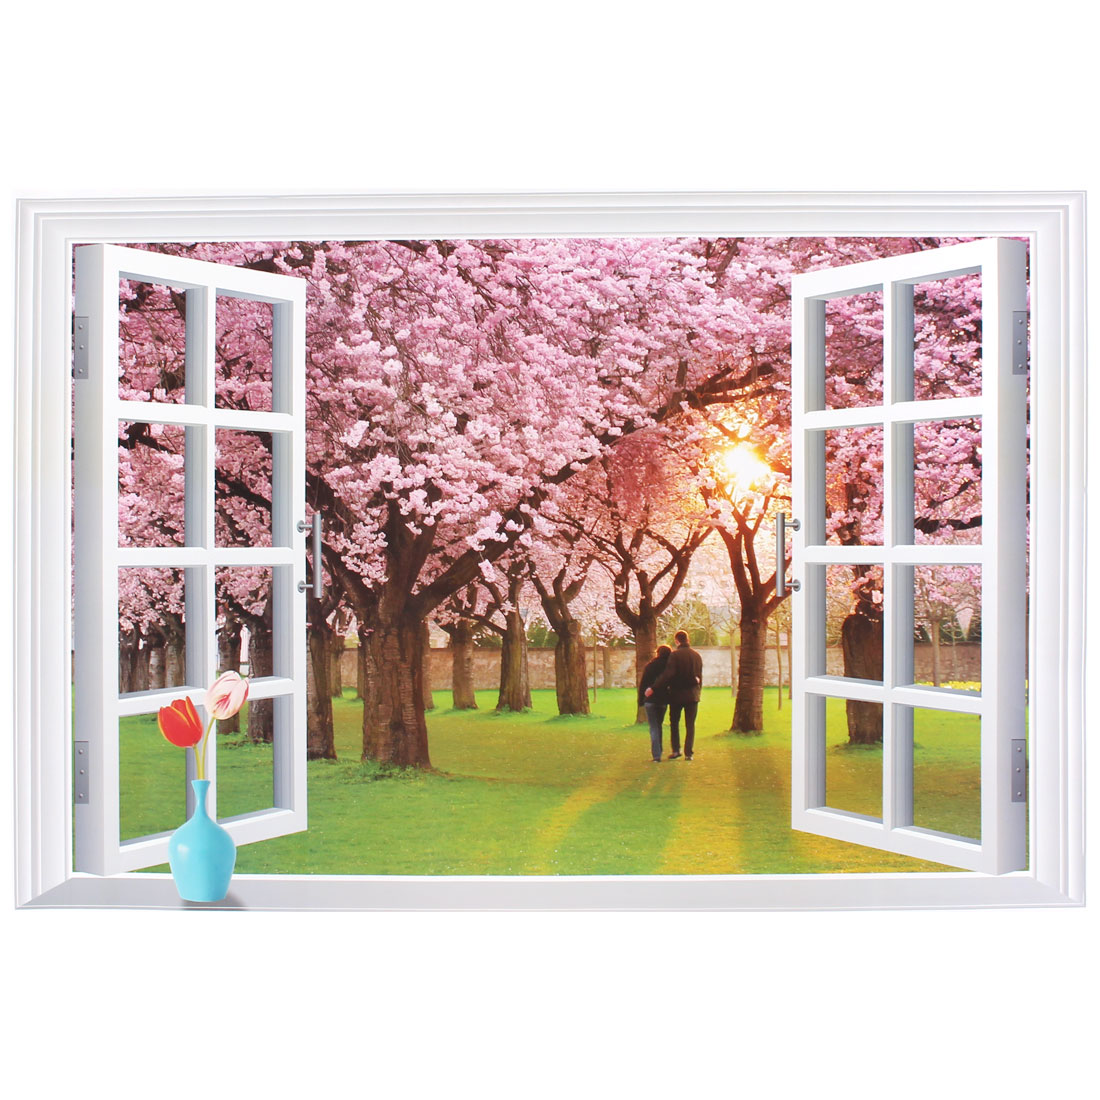 3D Sakura Couple Pattern Removable Wall Sticker Paper Mural Ornament 90x60cm